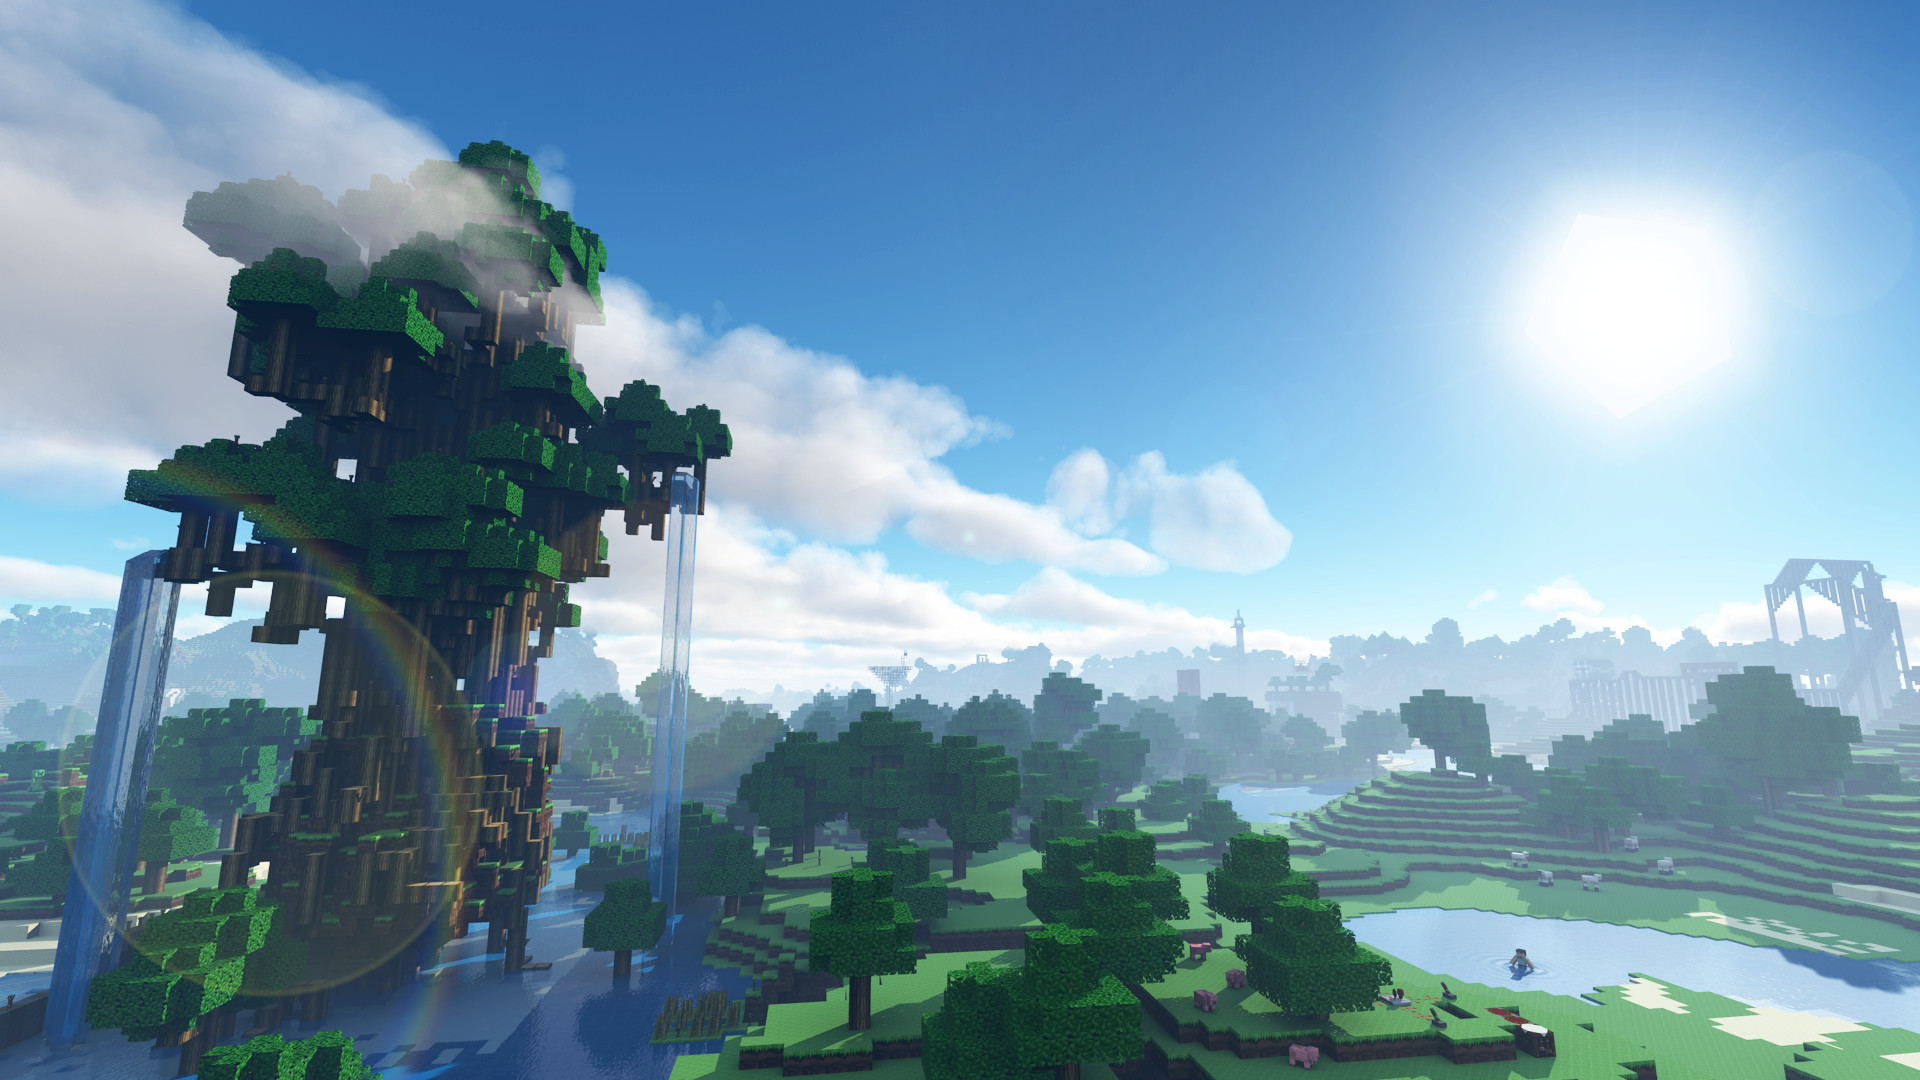 Minecraft Background Images 77 Images